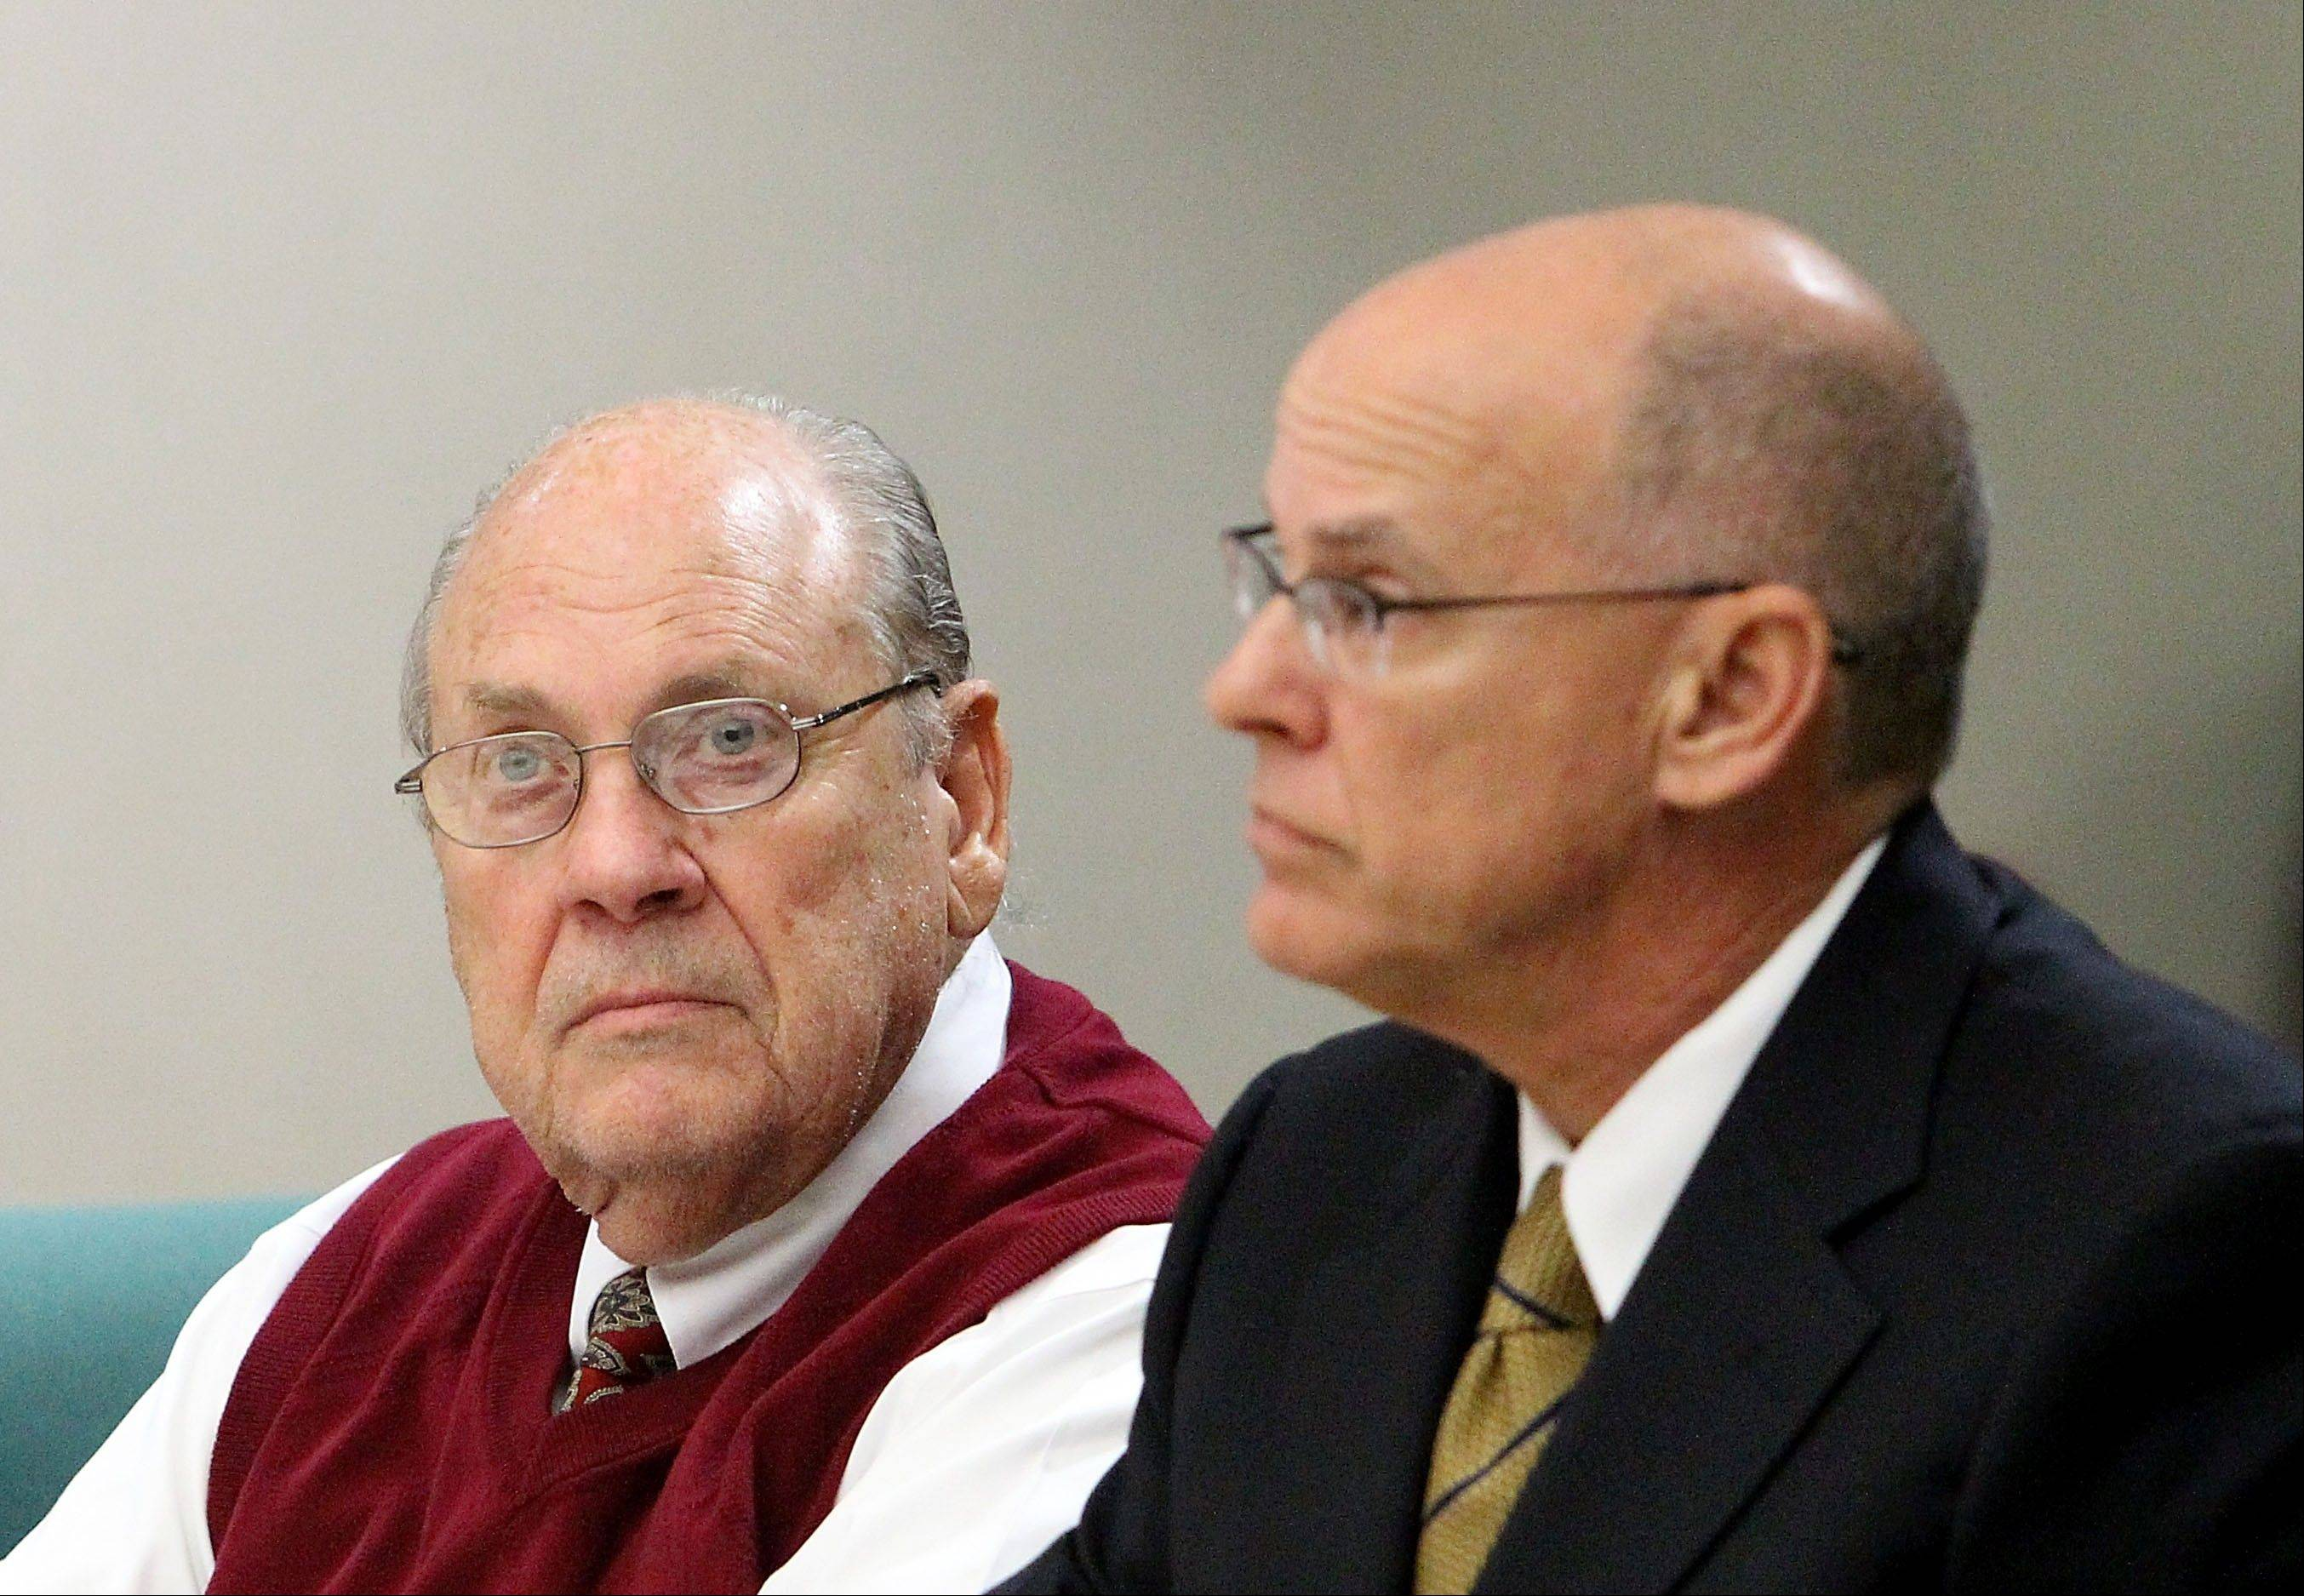 Former Tampa Police captain Curtis Reeves, Jr., left, sits beside his defense attorney Richard Escobar during his bond reduction hearing at the Robert D. Sumner Judicial Center in Dade City, Fla., Wednesday, Feb. 5, 2014. Reeves is accused of fatally shooting Chad Oulson, 43, and wounding his wife, Nicole, 33, during an argument over texting before a movie.